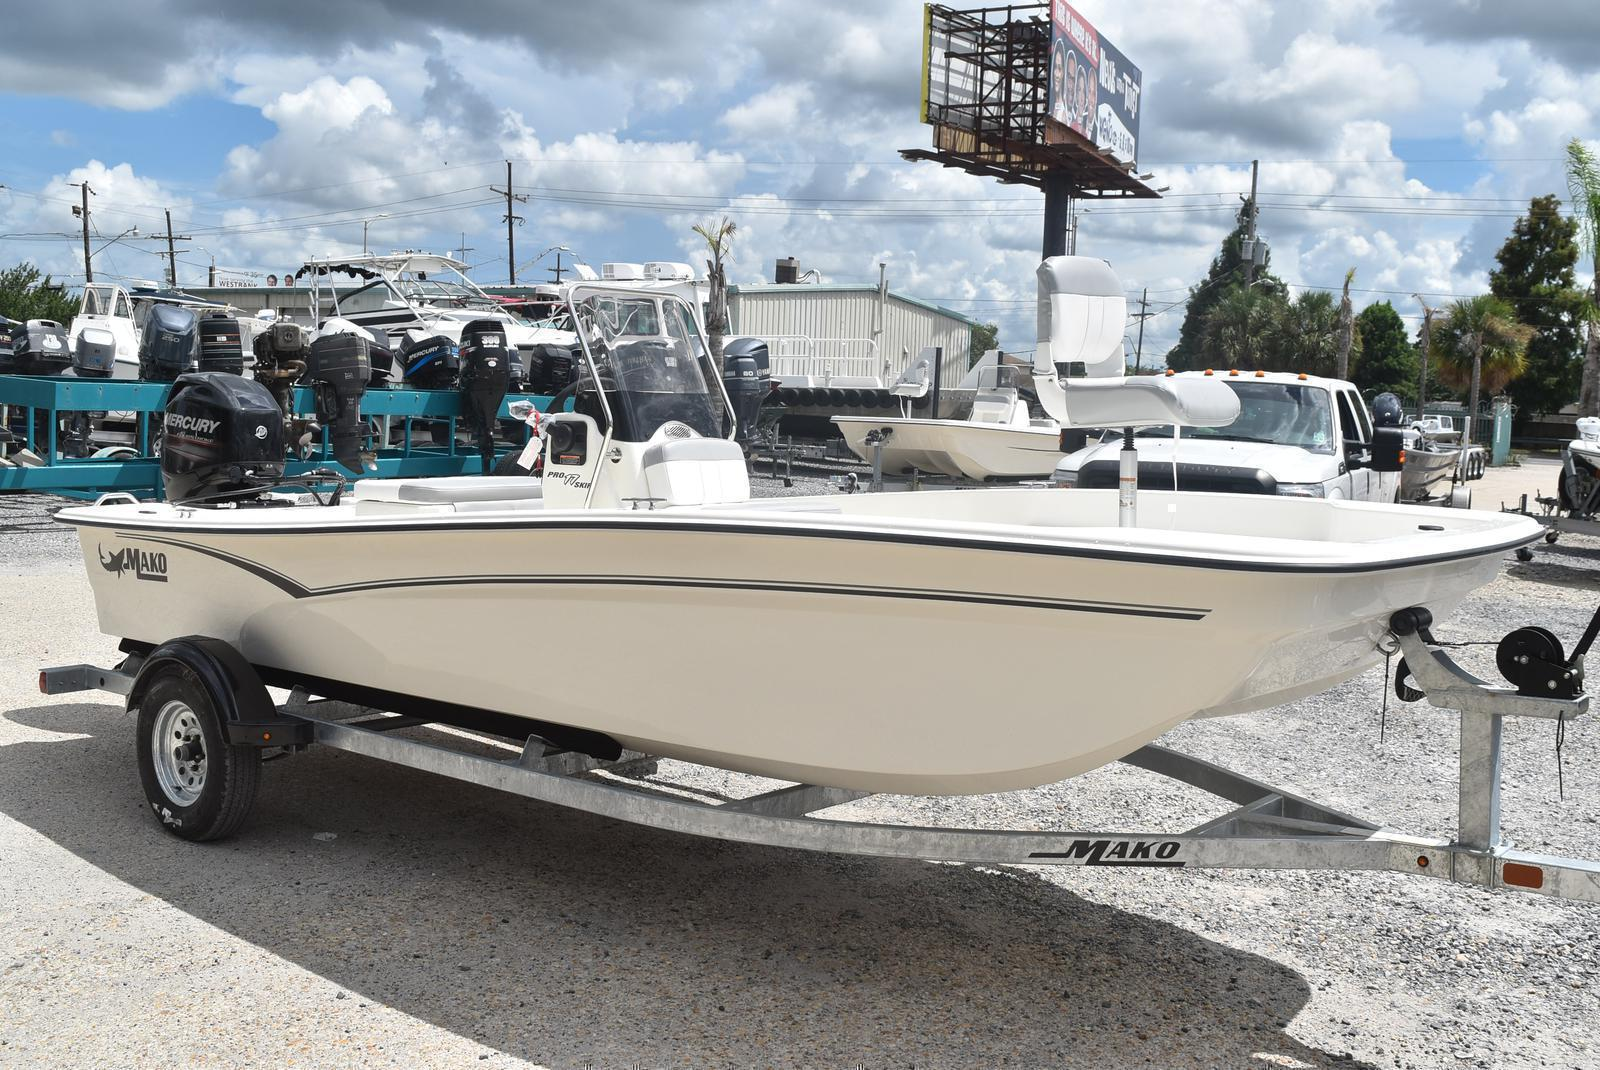 2020 Mako boat for sale, model of the boat is Pro Skiff 17, 75 ELPT & Image # 640 of 702